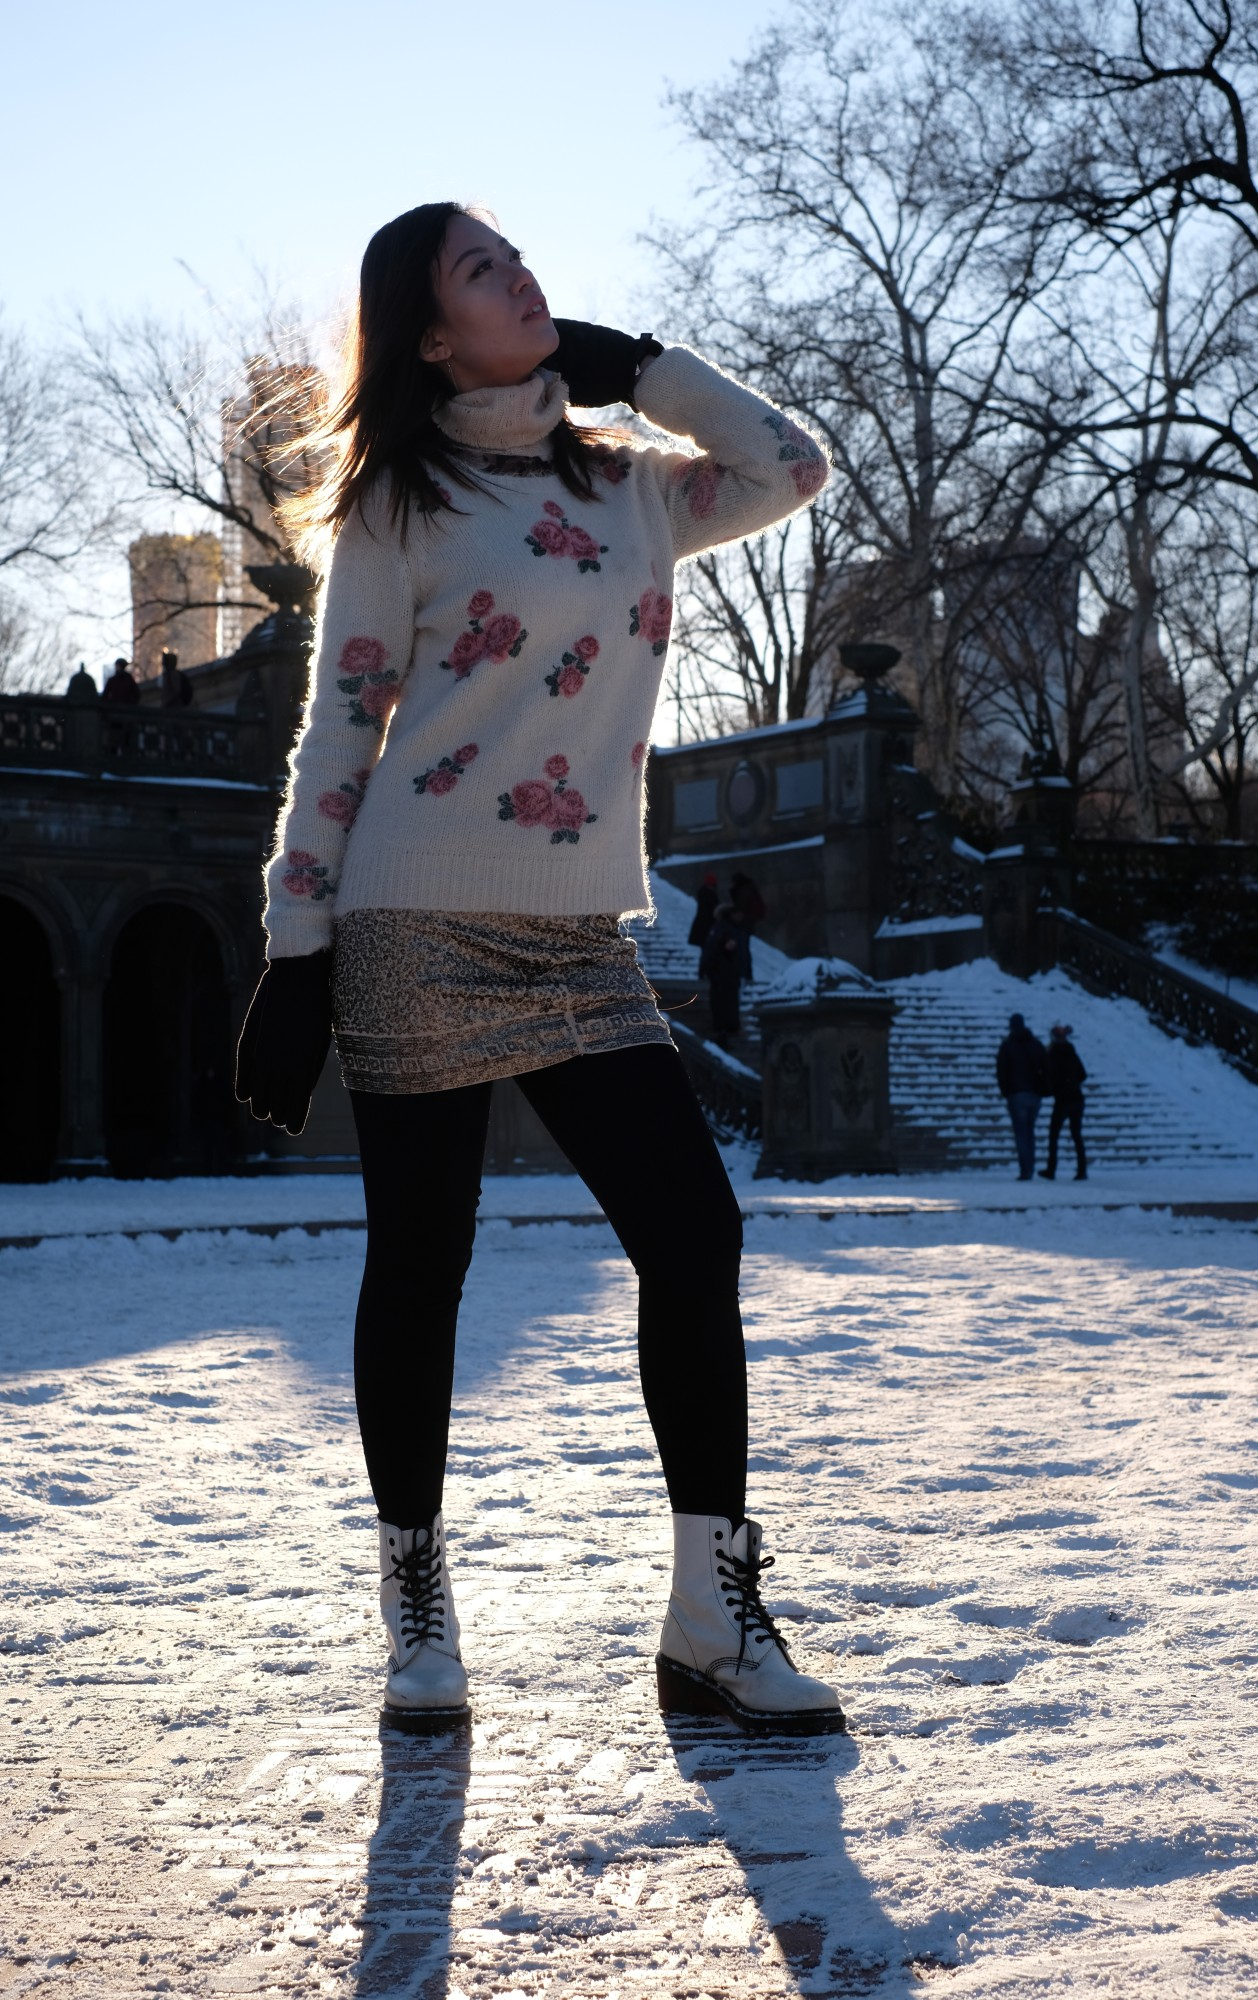 chinese girl in central park